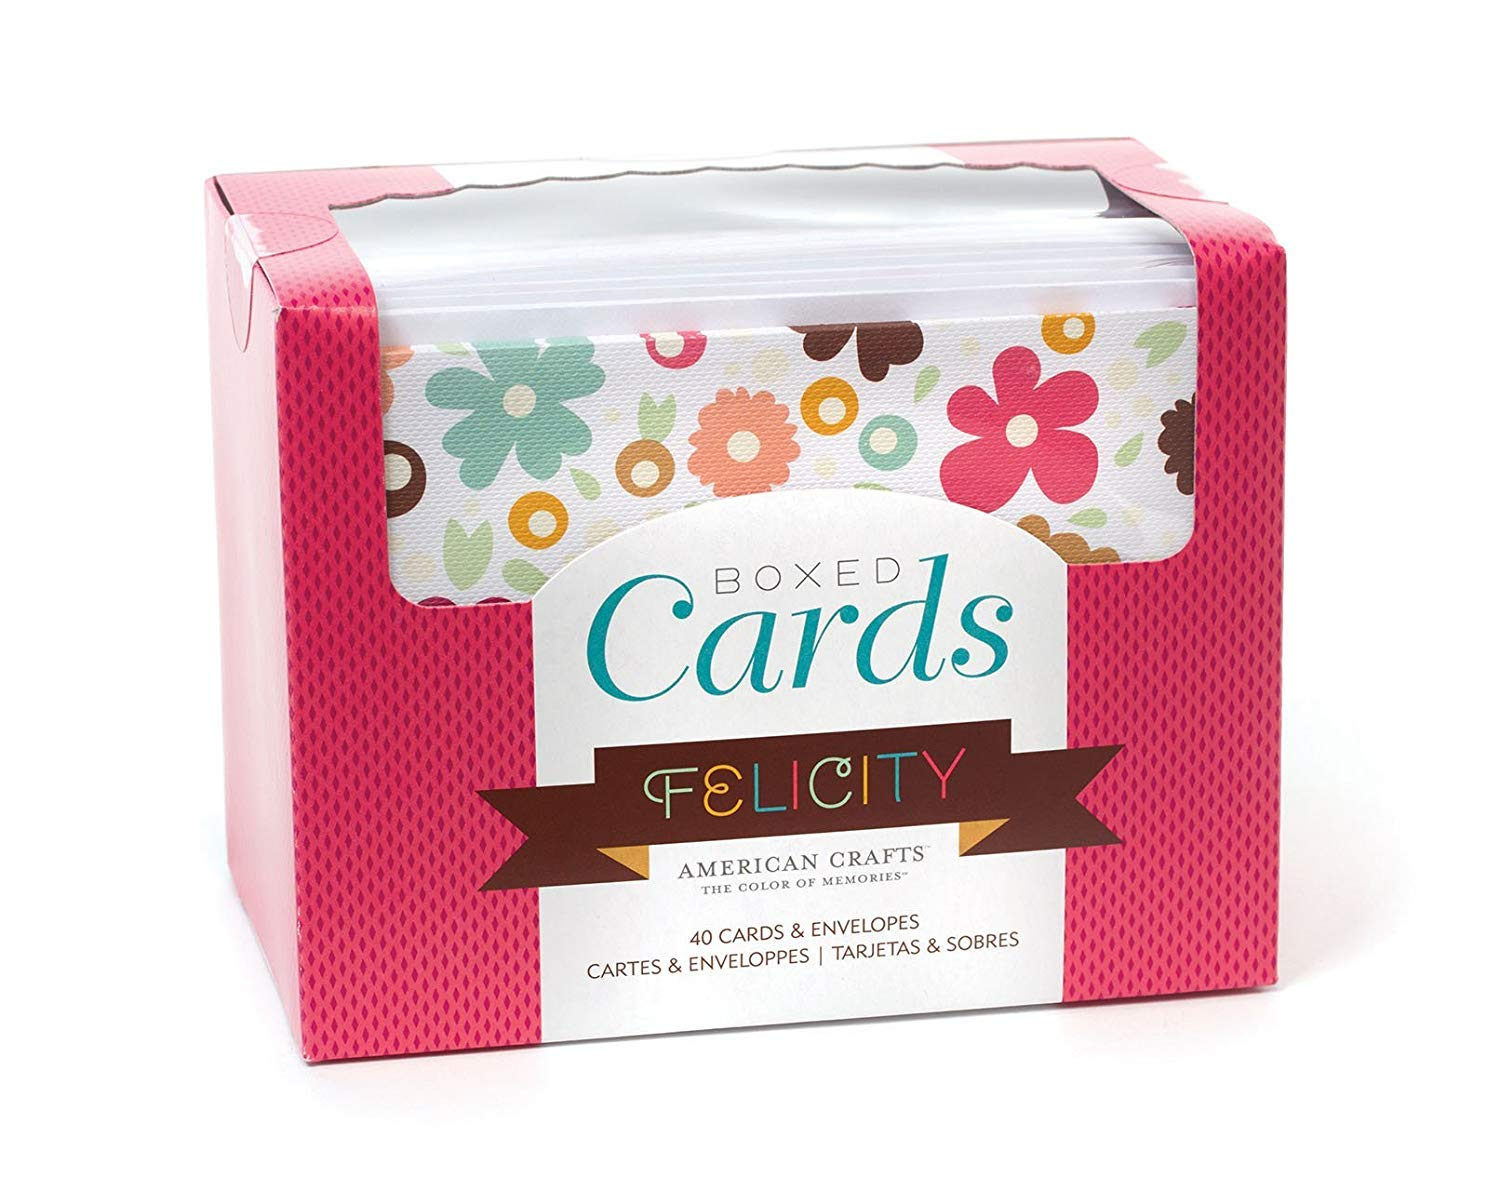 American Crafts llc Boxed Cards and Envelopes Includes 40 Cards and envelopes. Various Designs.